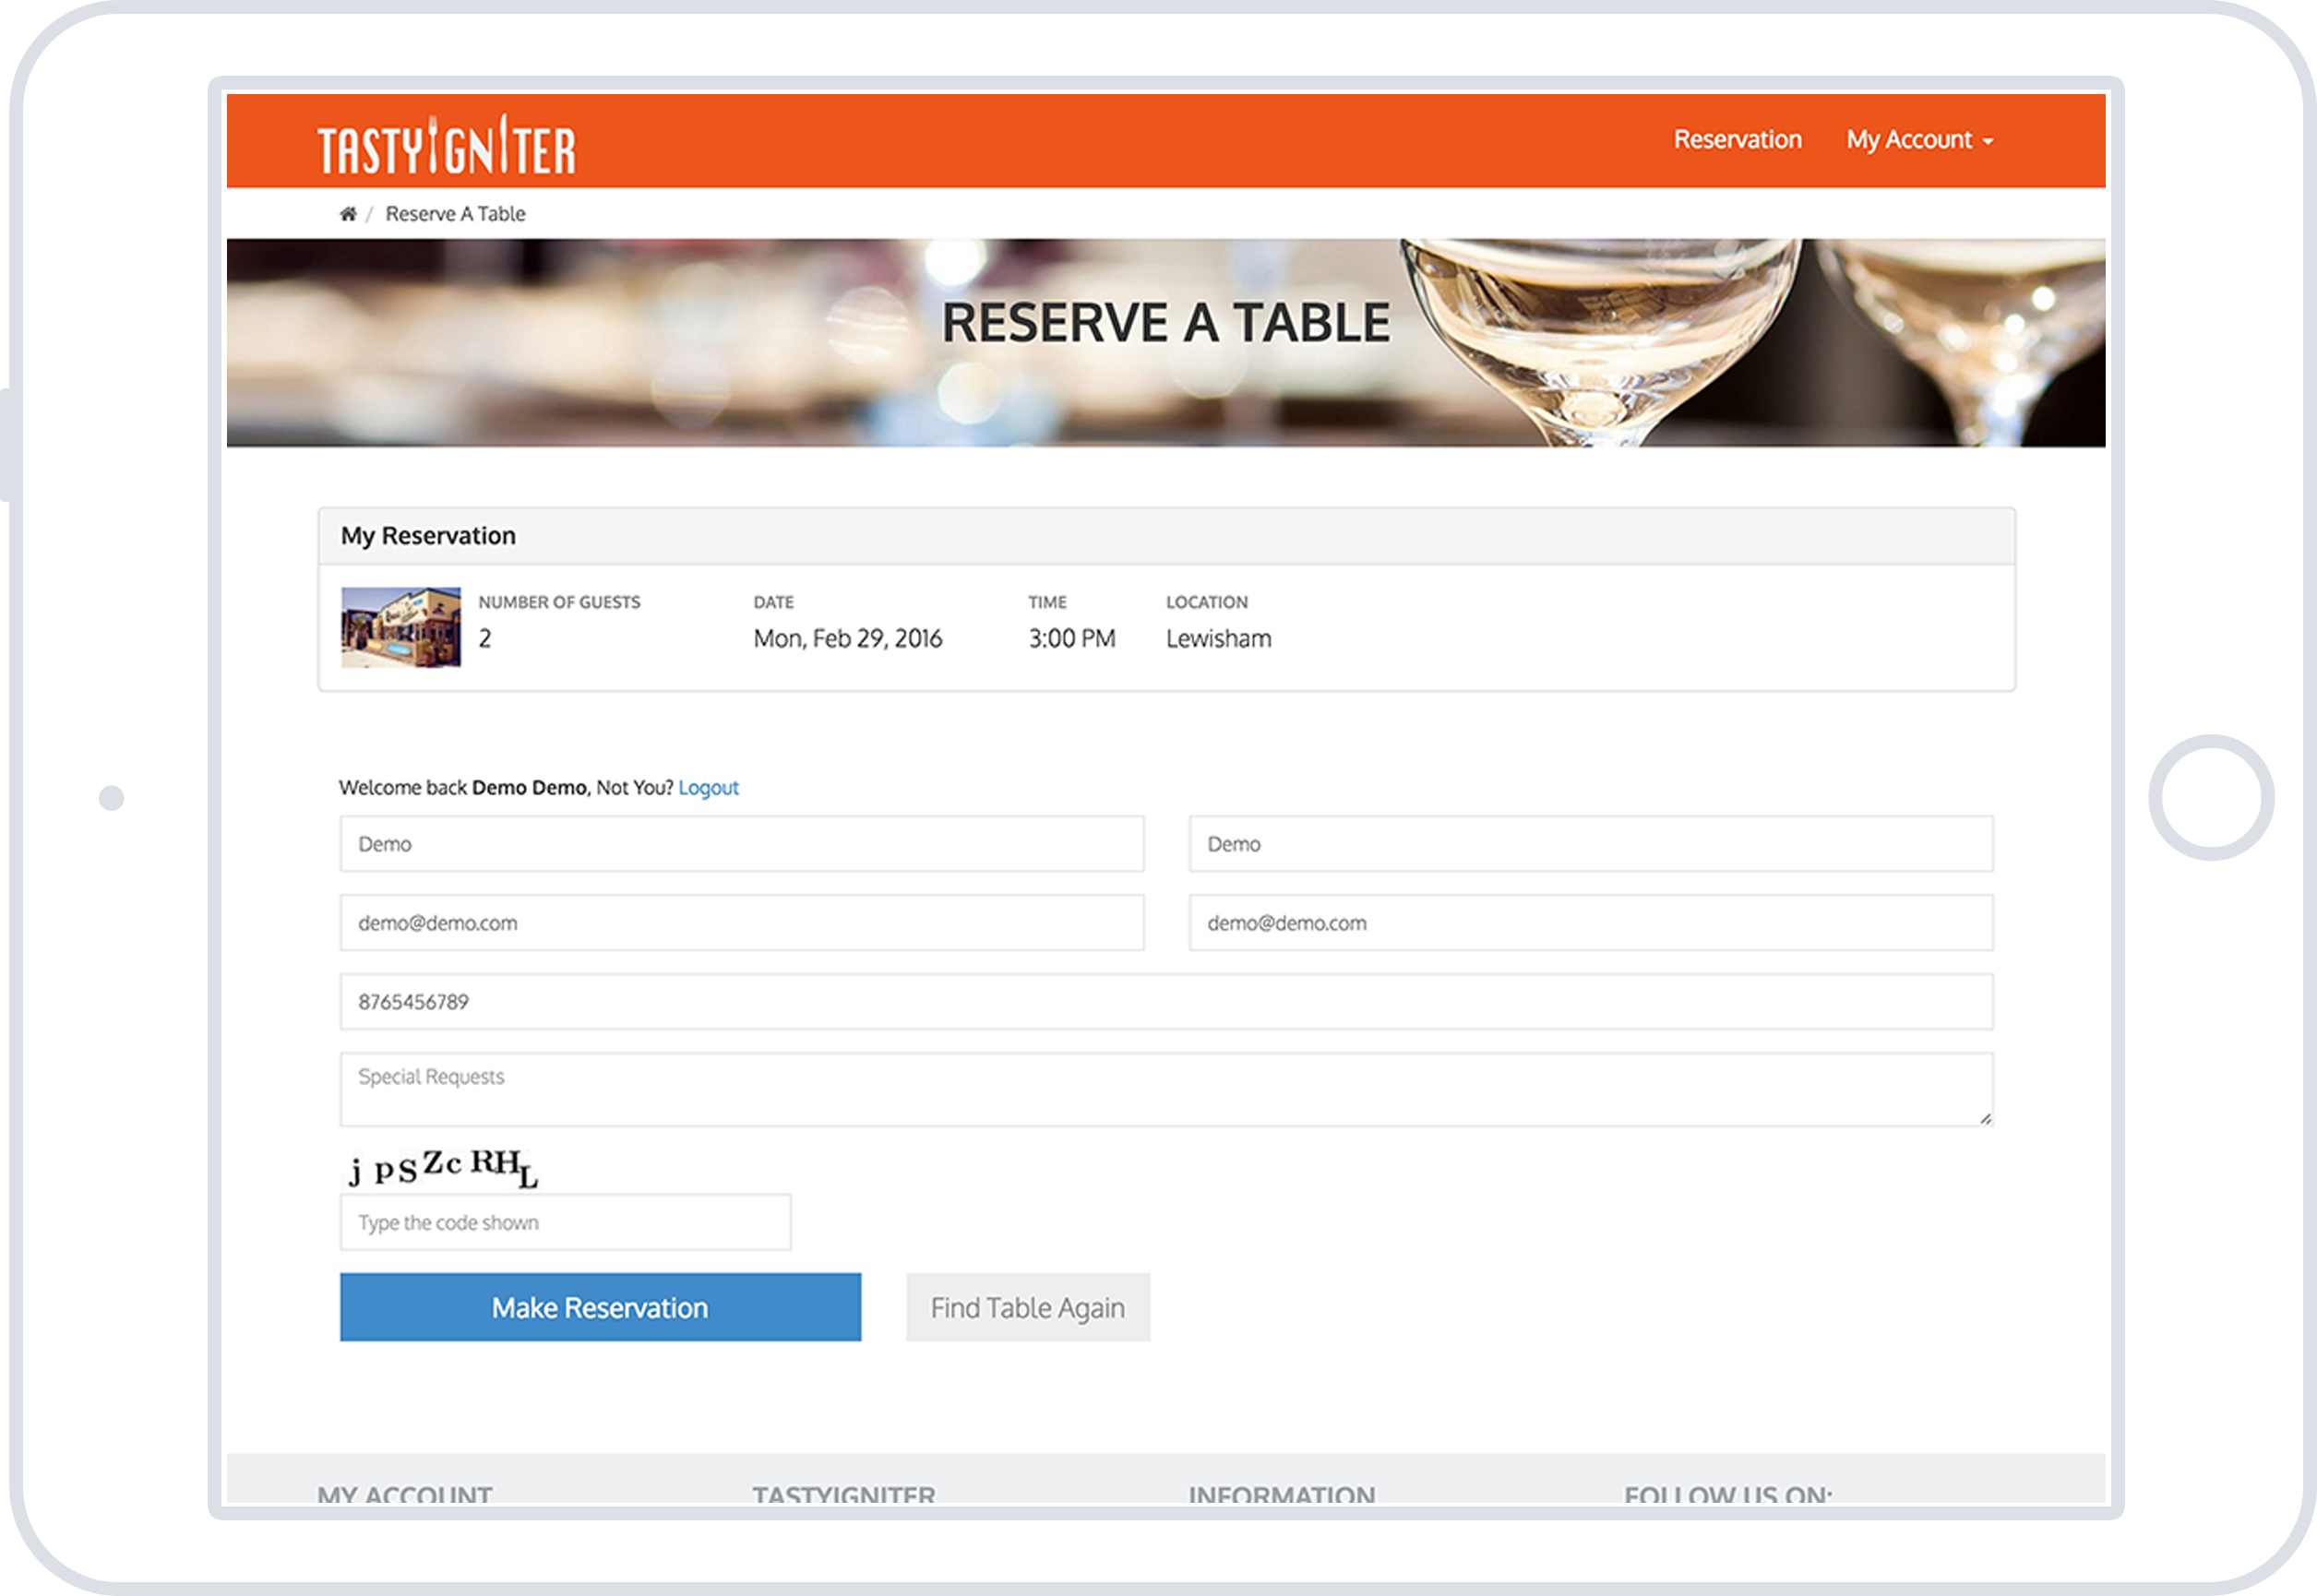 Features Of TastyIgniter Restaurant Management Software TastyIgniter - Table reservation software